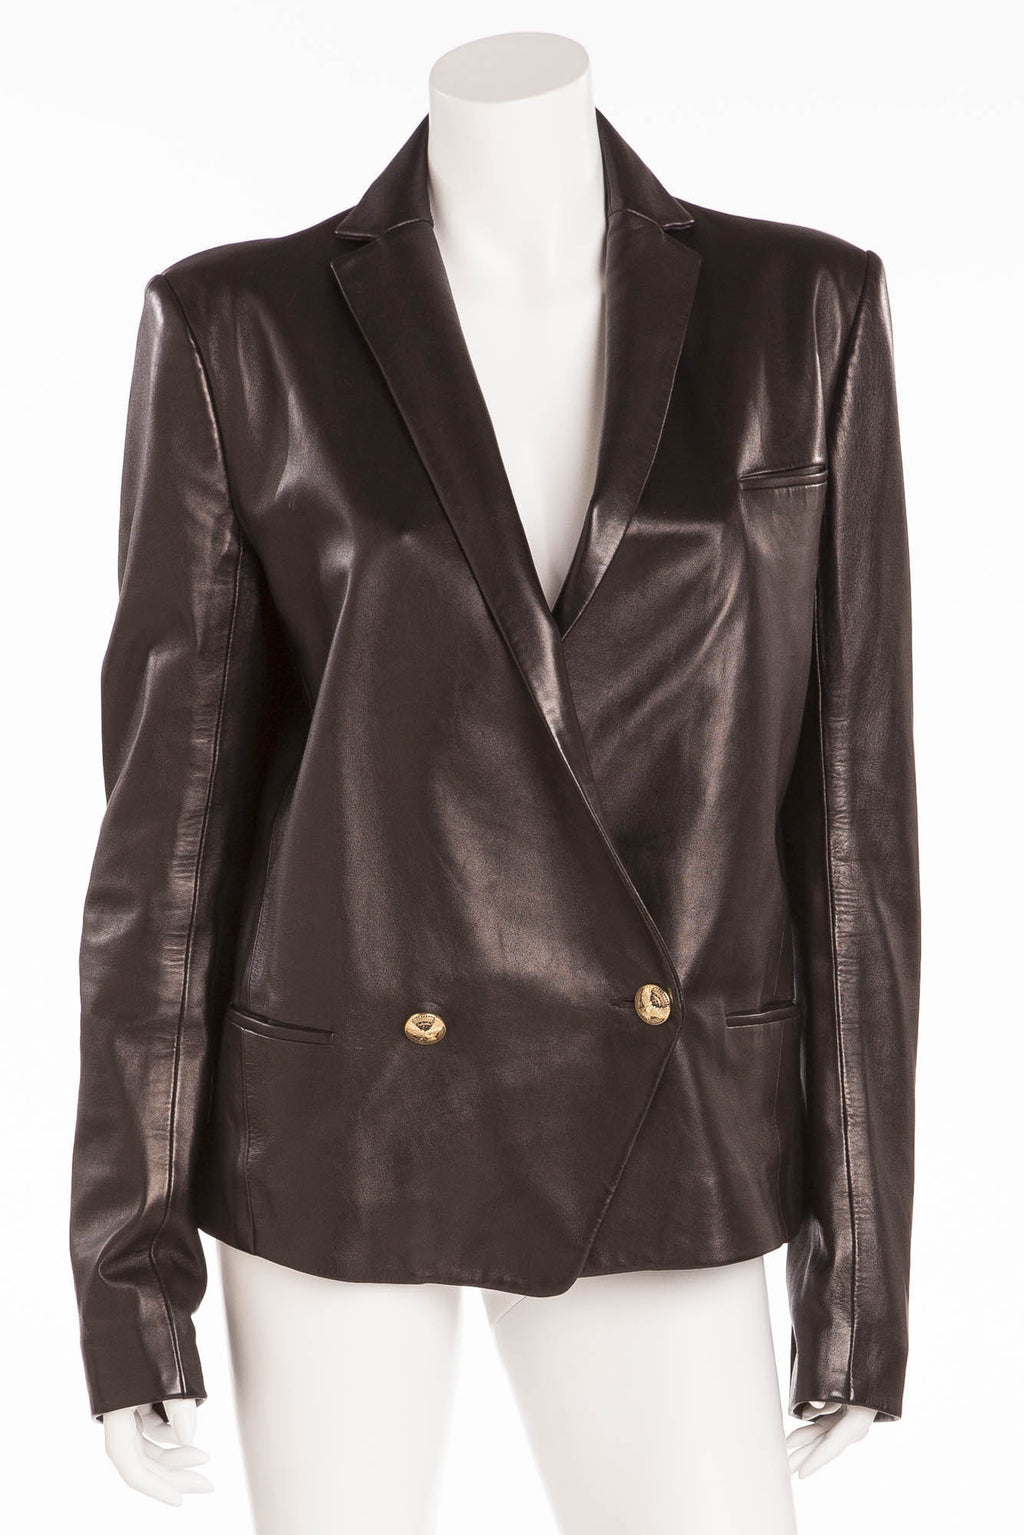 Balmain - Black Leather Blazer Gold Buttons - FR 42